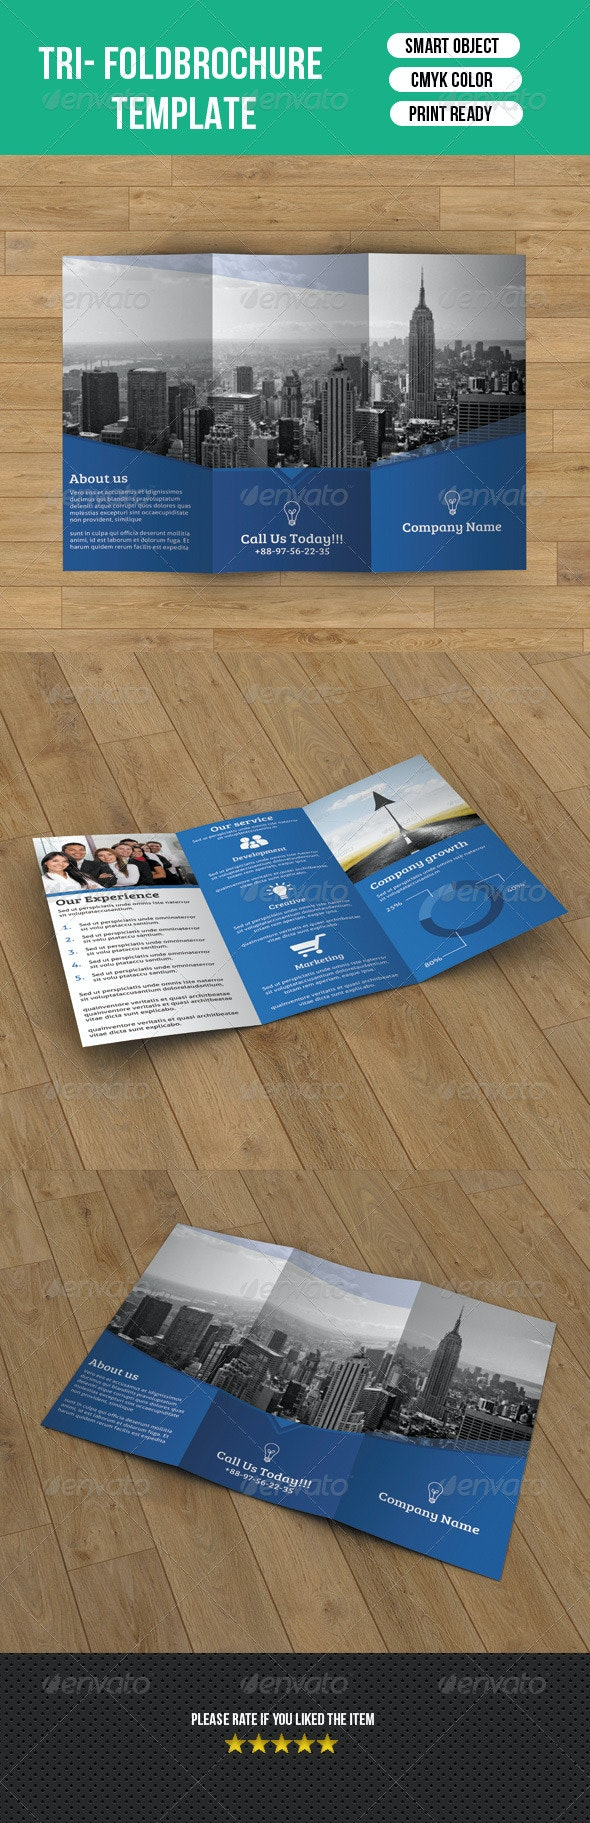 Corporate Trifold Template-V19 - Corporate Brochures